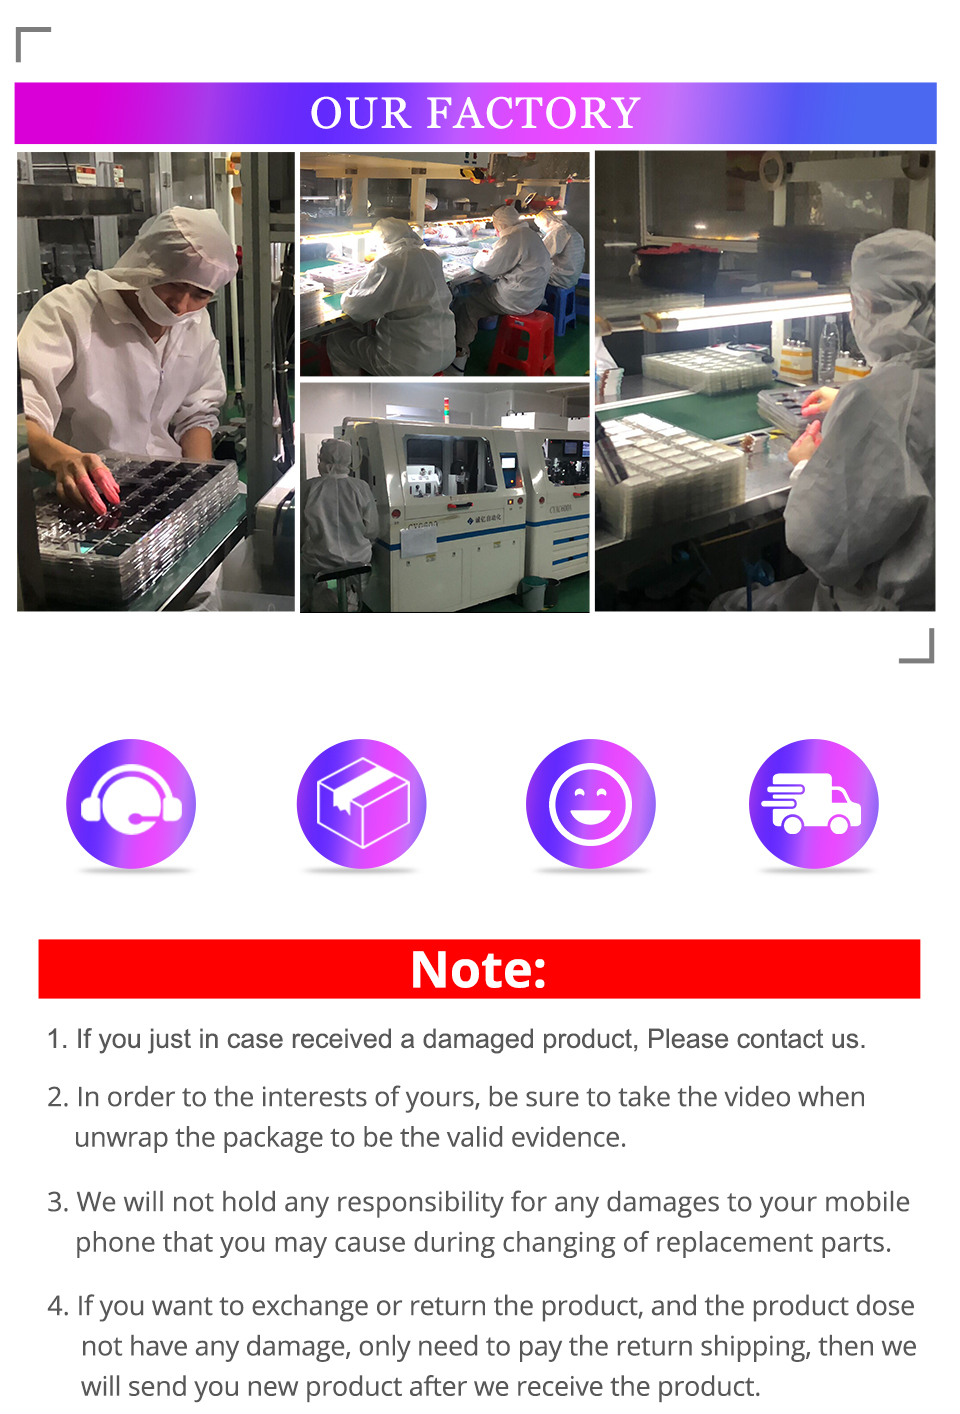 HTB1bO3VadfvK1RjSszhq6AcGFXaz 5.6 inch For Samsung Galaxy J6 2018 J600 J600F J600Y LCD screen Display and touch Glass pannel Assembly Can adjust brightness